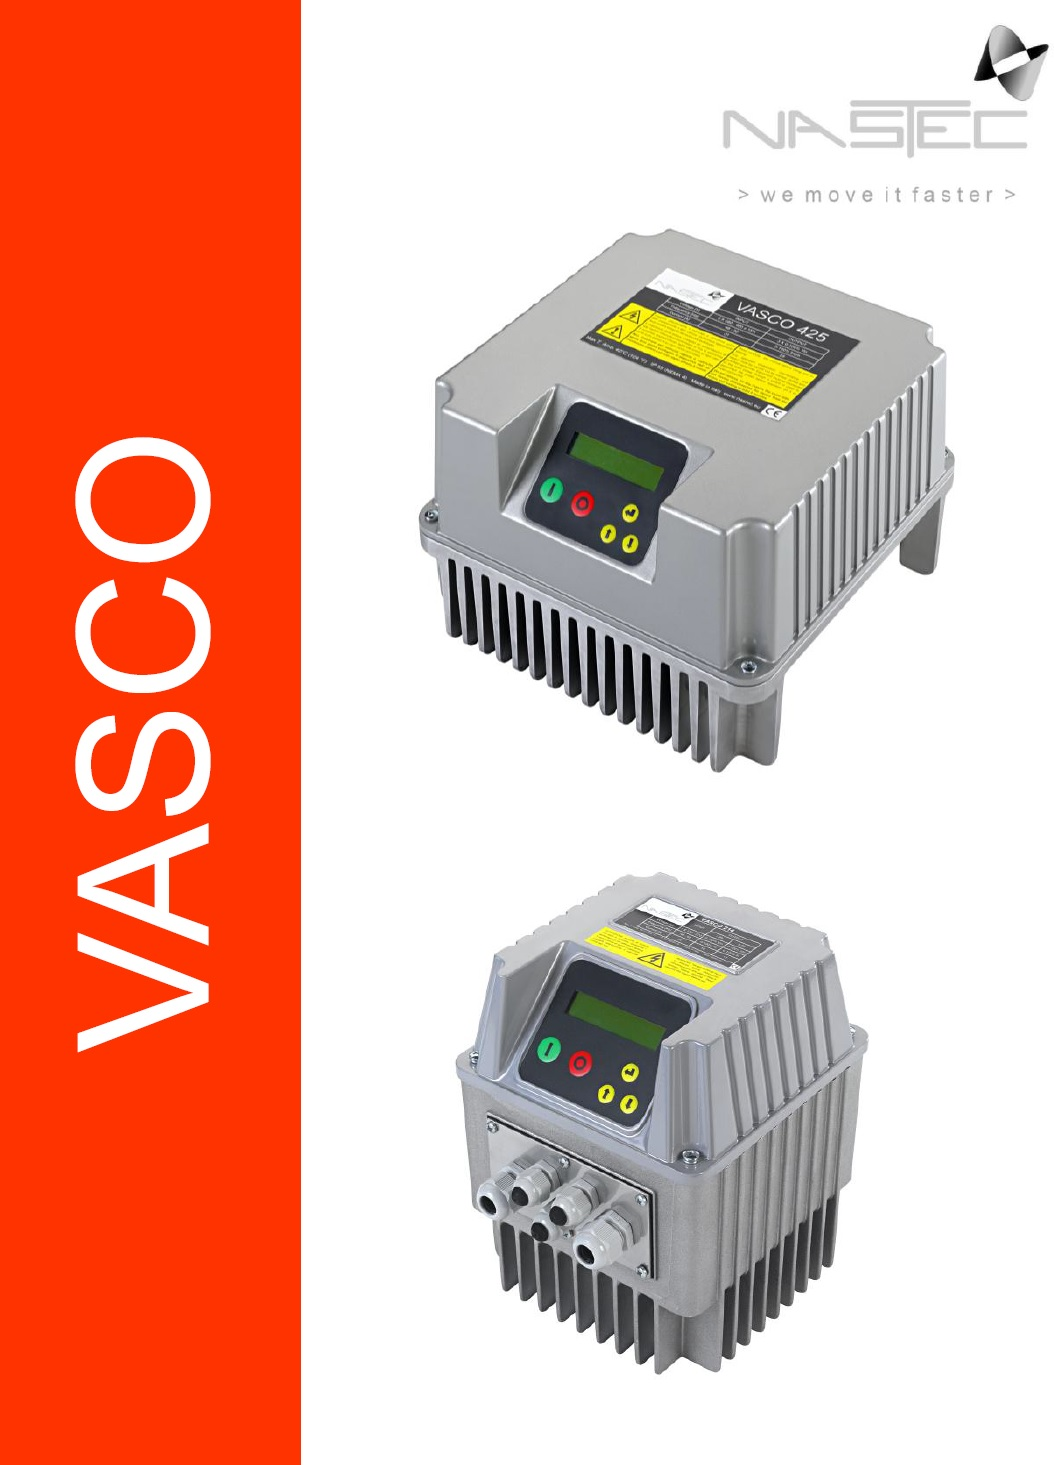 Vasco Water Pump Variable Speed Drives Gm Pumps Cc Frequency Drive Electronics Hobby